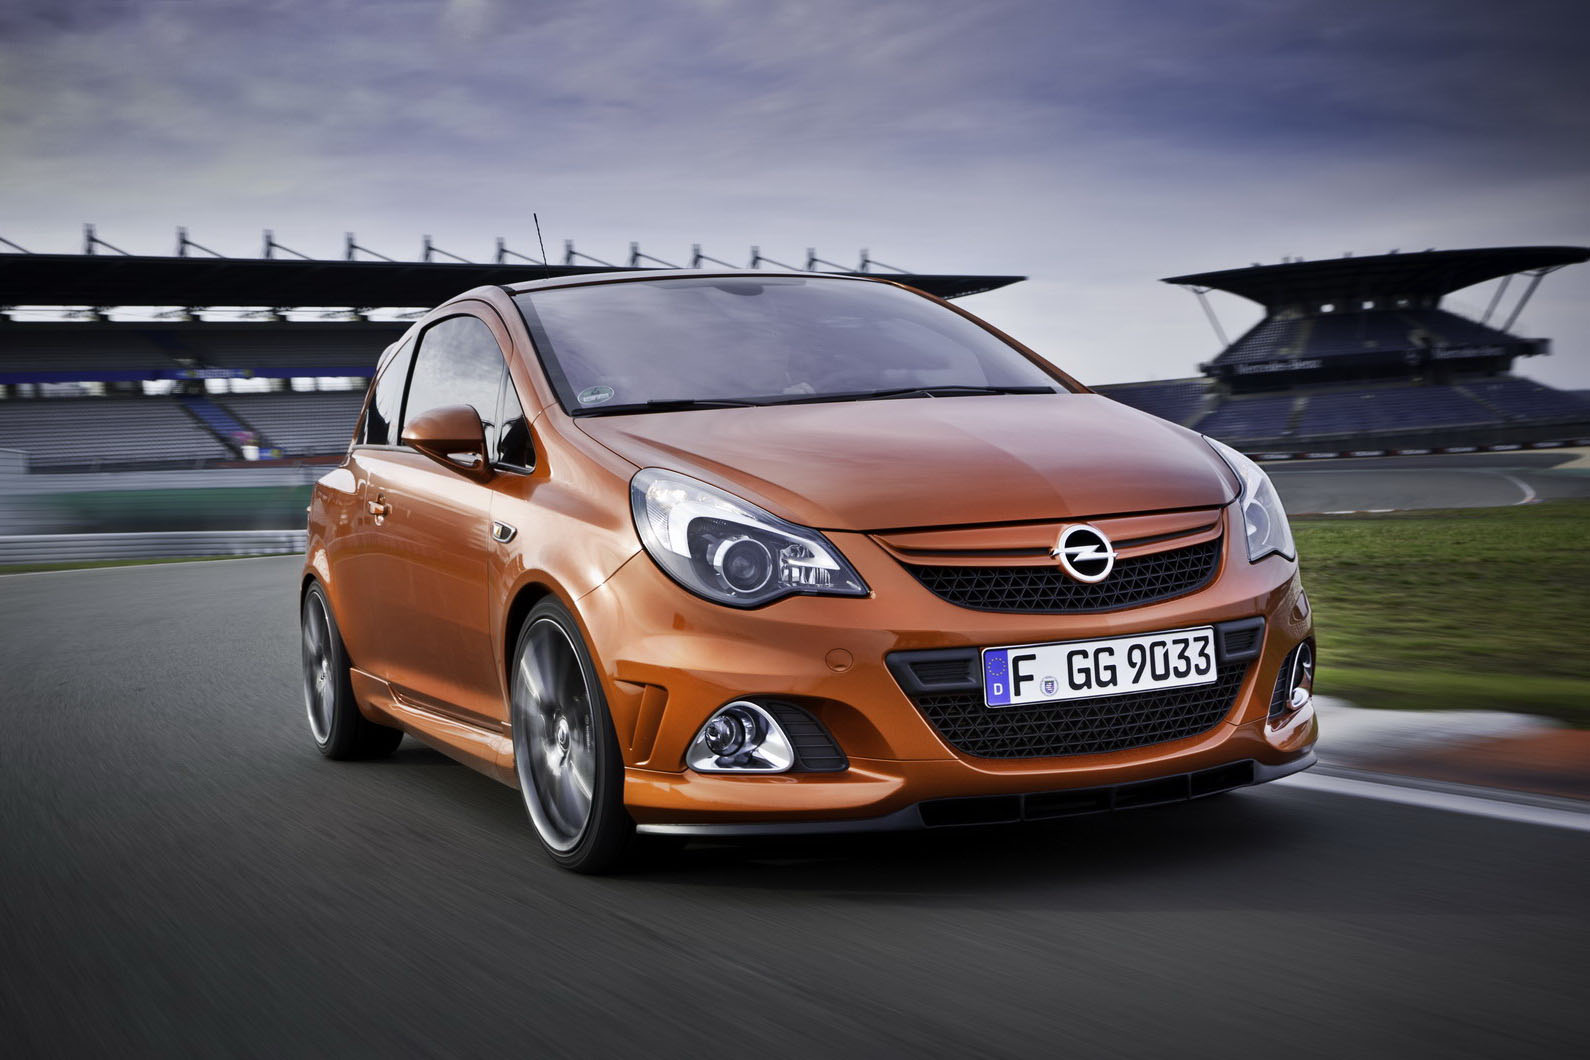 opel corsa opc nurburgring edition comes home for big. Black Bedroom Furniture Sets. Home Design Ideas